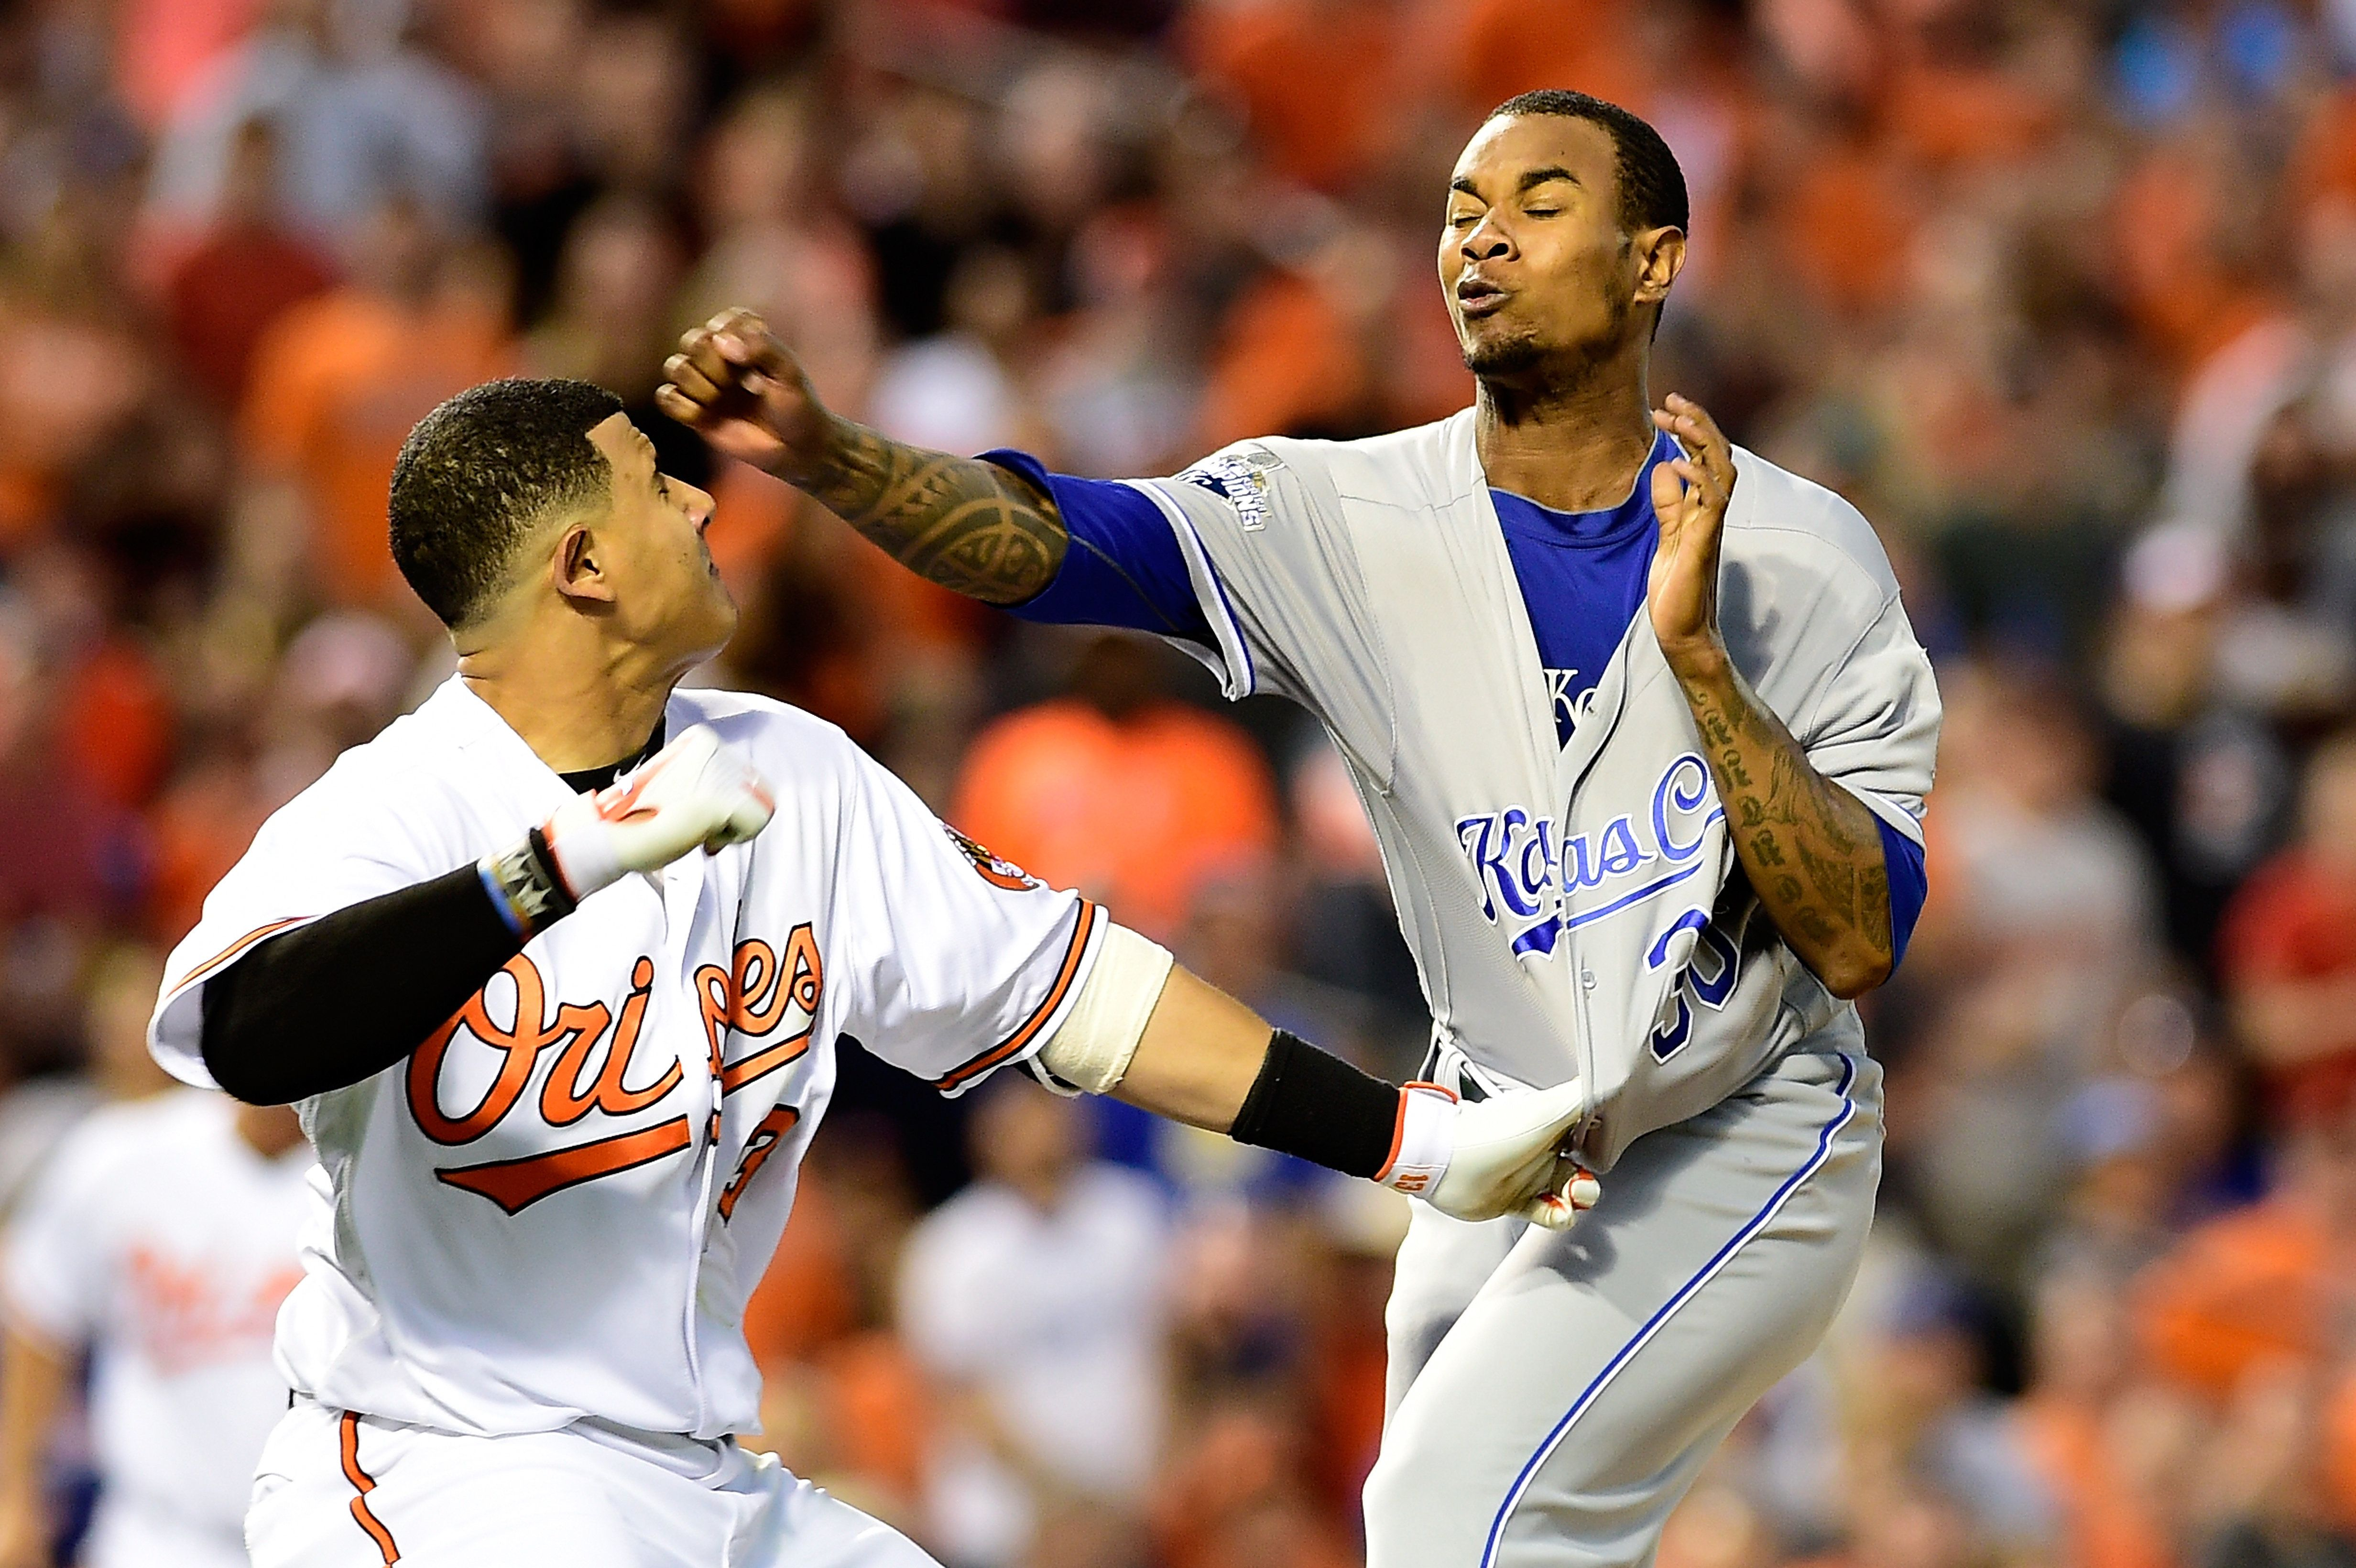 BALTIMORE, MD - JUNE 07:  Manny Machado #13 of the Baltimore Orioles and Yordano Ventura #30 of the Kansas City Royals fight in the fifth inning during a MLB baseball game at Oriole Park at Camden Yards on June 7, 2016 in Baltimore, Maryland. Machado and Ventura were ejected from the game. (Photo by Patrick McDermott/Getty Images)